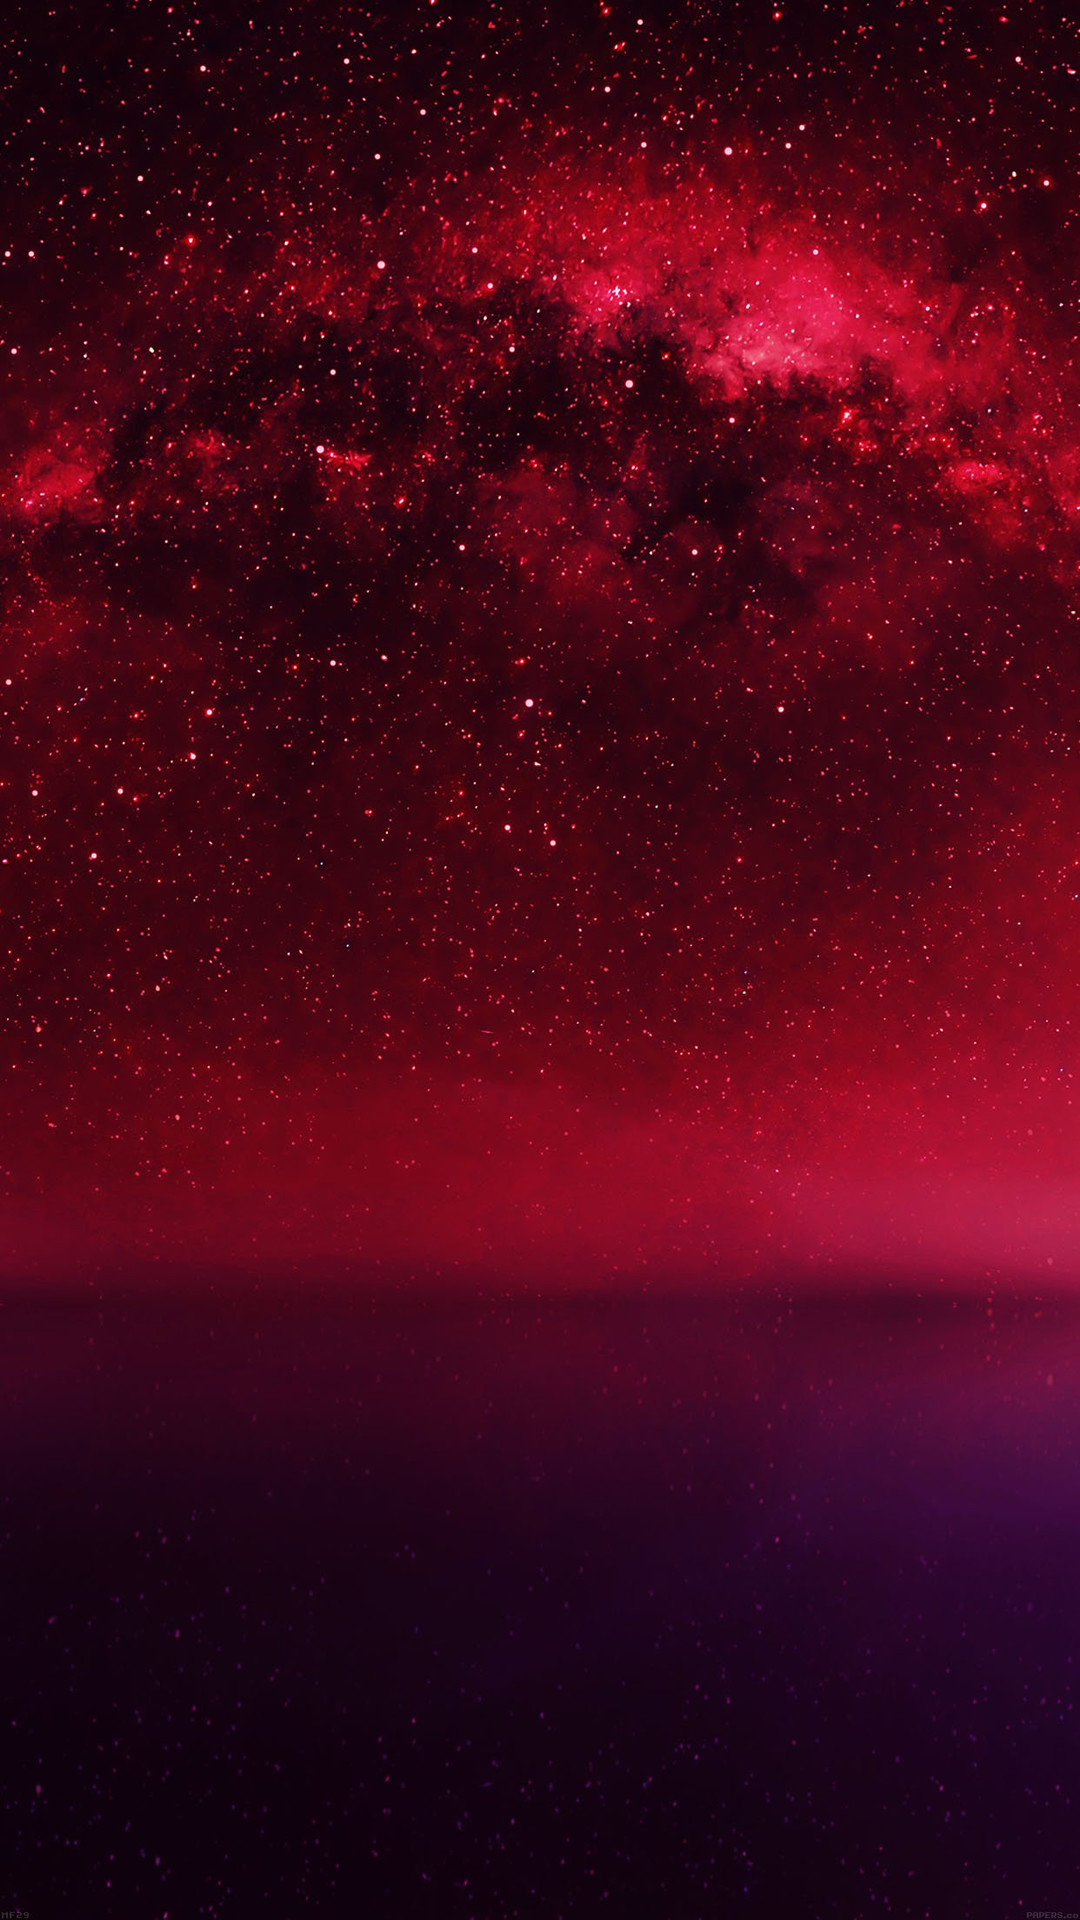 Cosmos Red Night Live Lake Space Starry iPhone 6 wallpaper